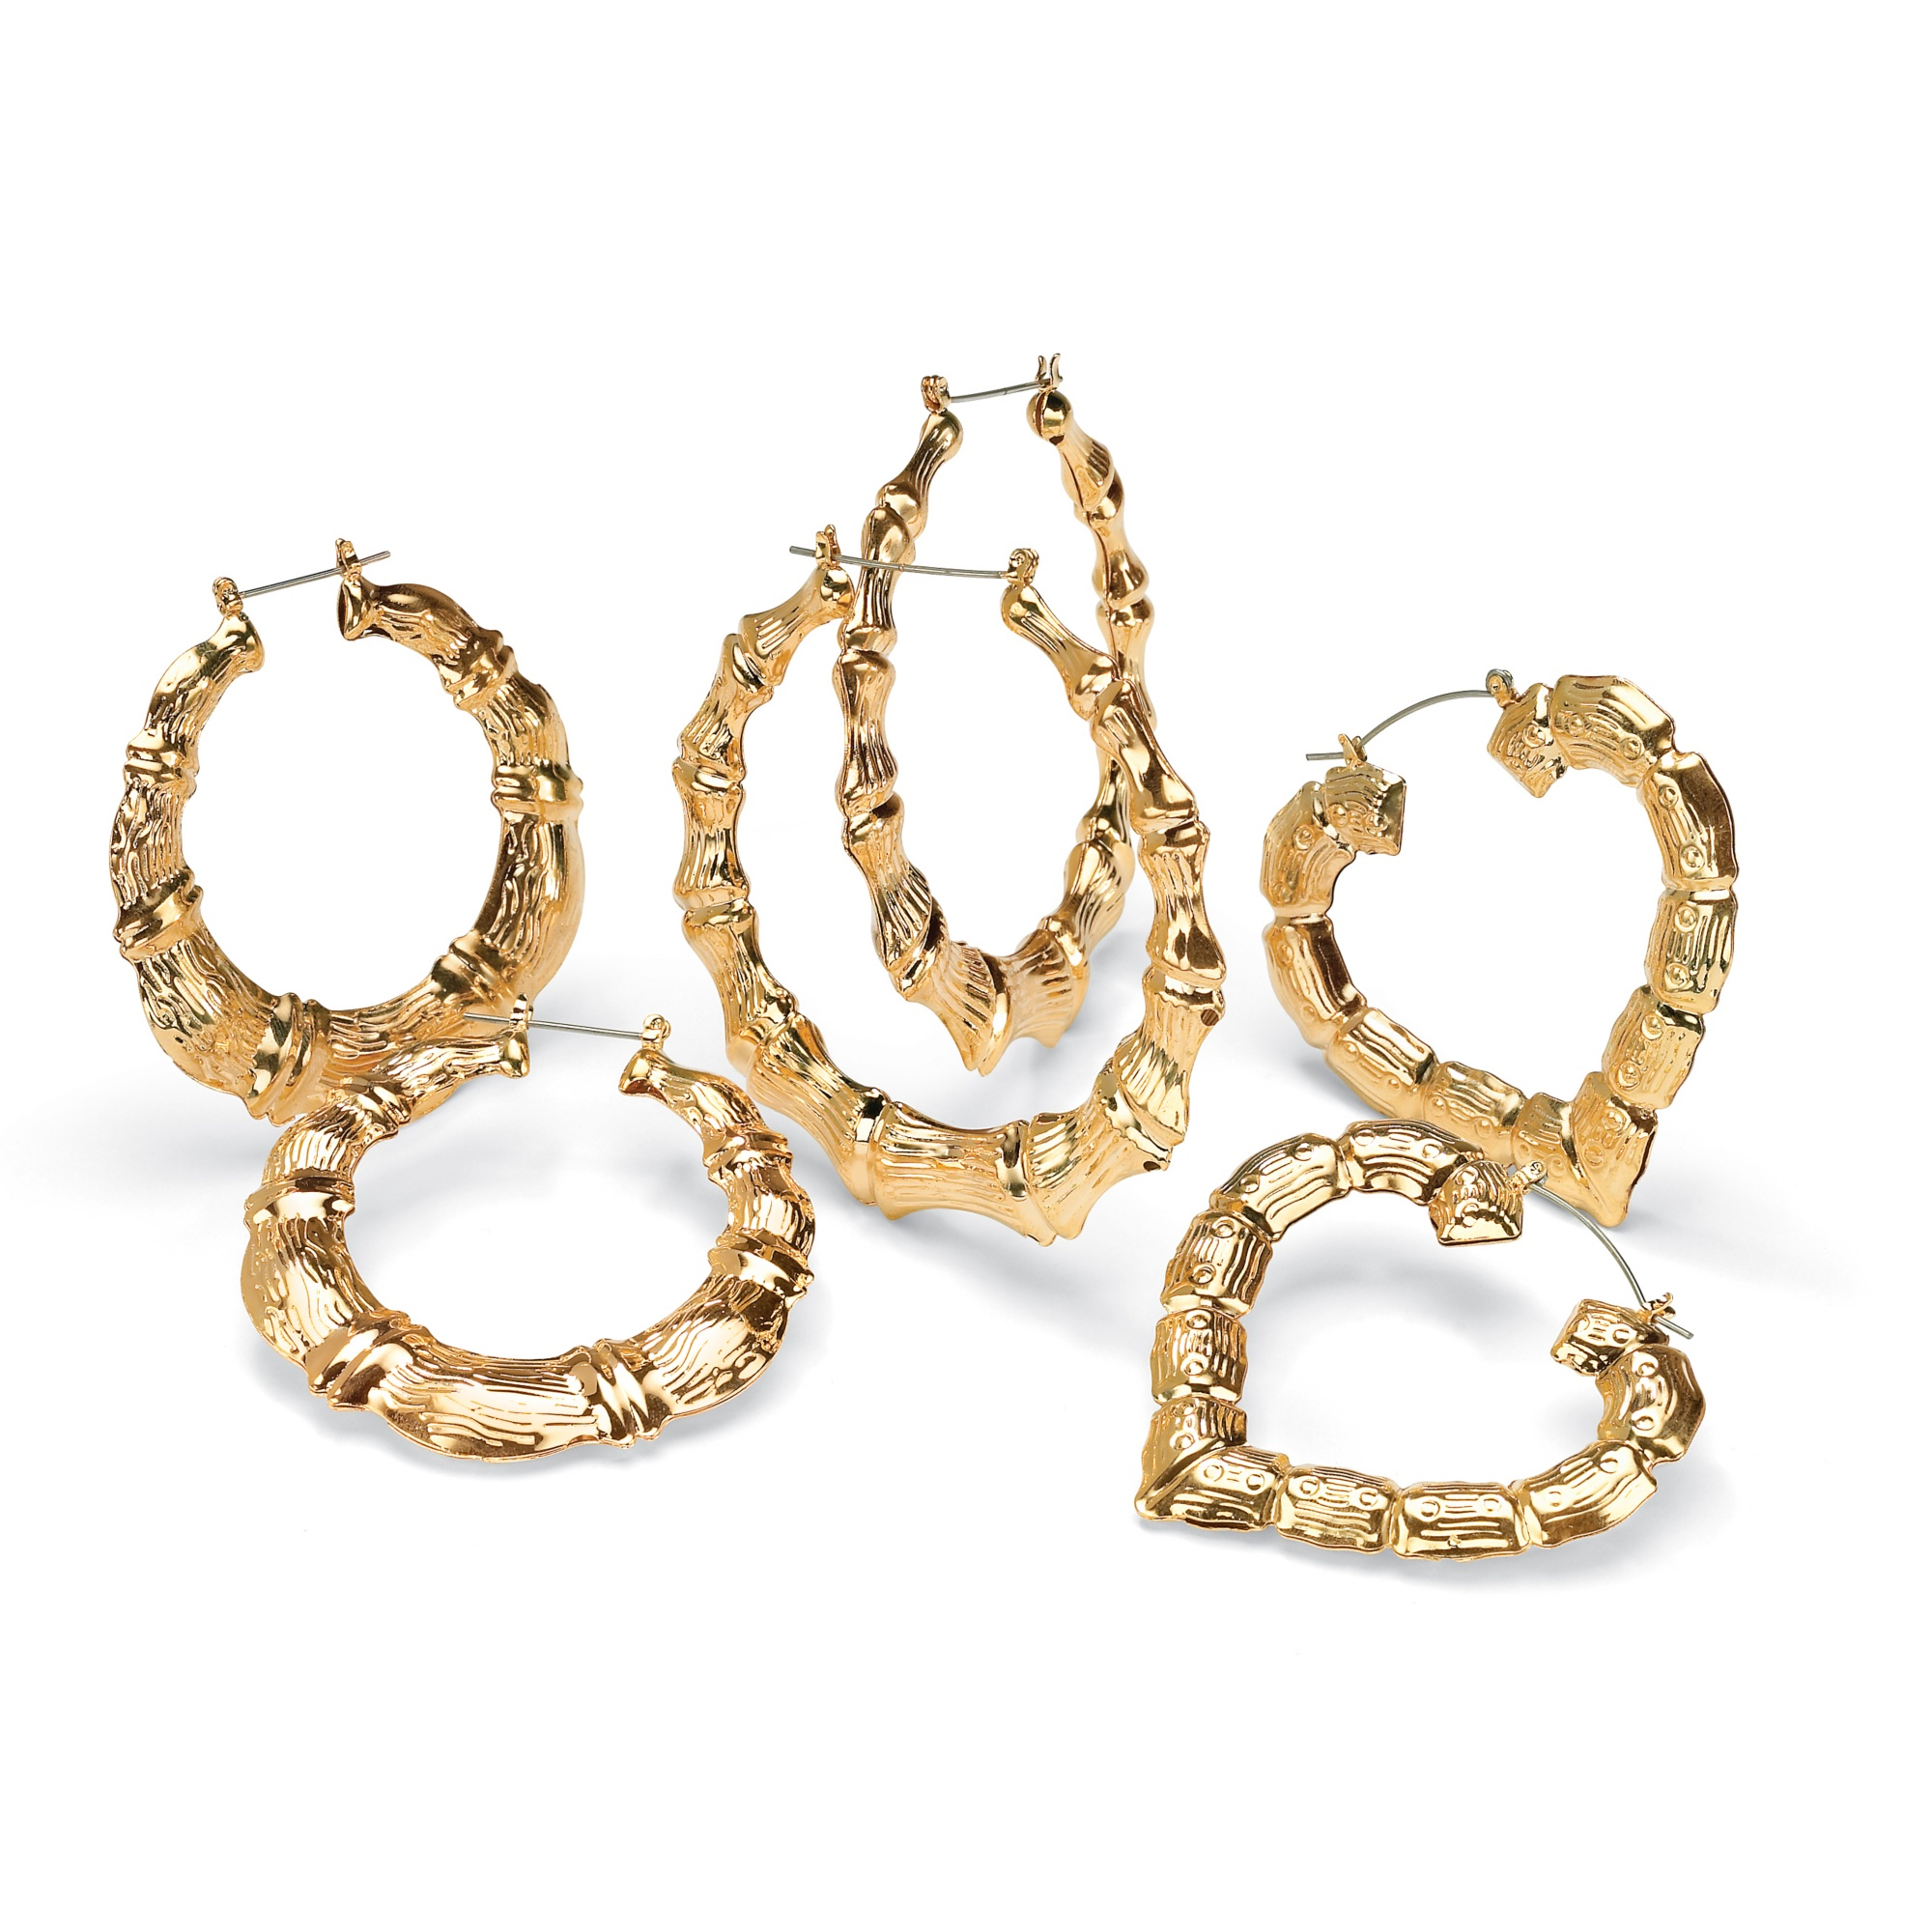 3 Pair Bamboo Style Hoop Earrings Set in Yellow Gold Tone at PalmBeach Jewelry  sc 1 st  Palm Beach Jewelry & 3 Pair Bamboo Style Hoop Earrings Set in Yellow Gold Tone at ...